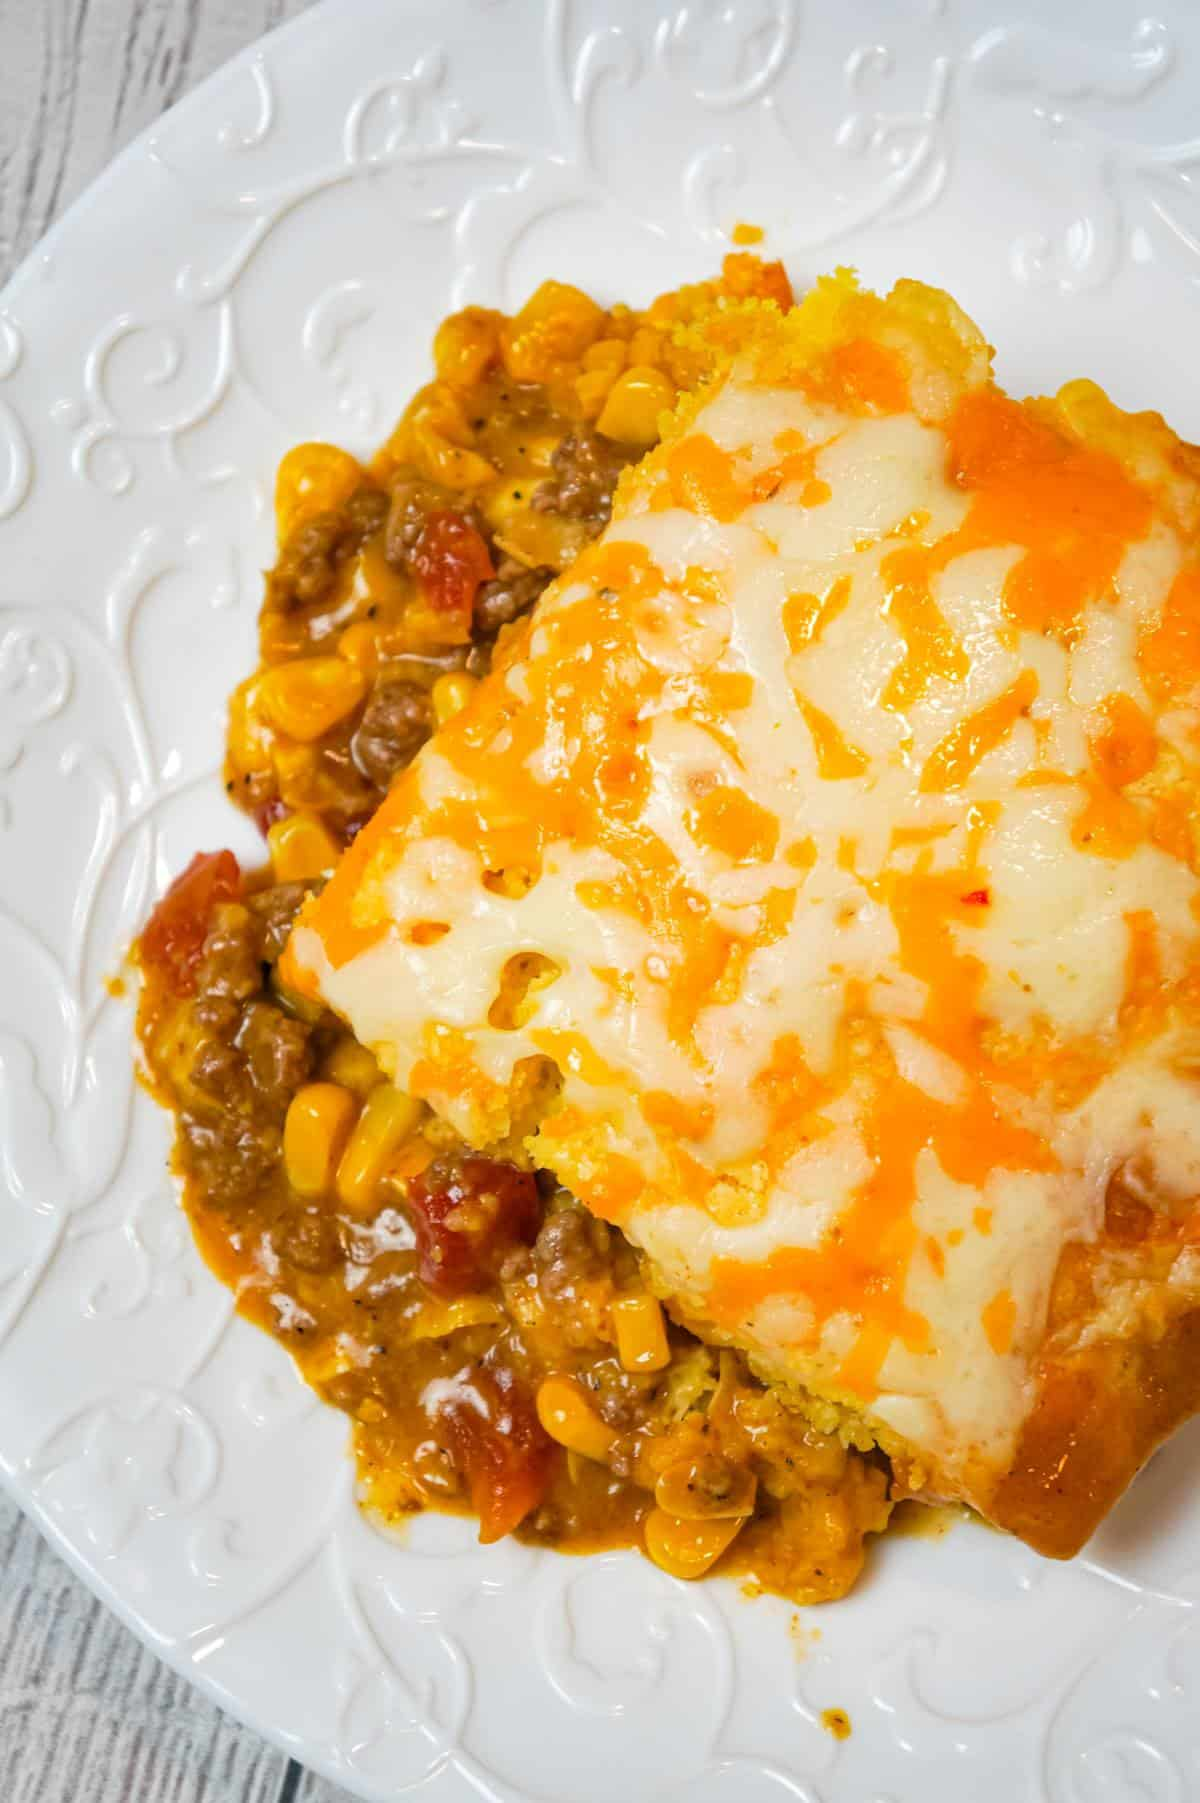 Mexican Cornbread Casserole is an easy ground beef dinner recipe loaded with corn, Rotel diced tomatoes and green chilies, taco seasoning and shredded cheese all topped with Jiffy cornbread.